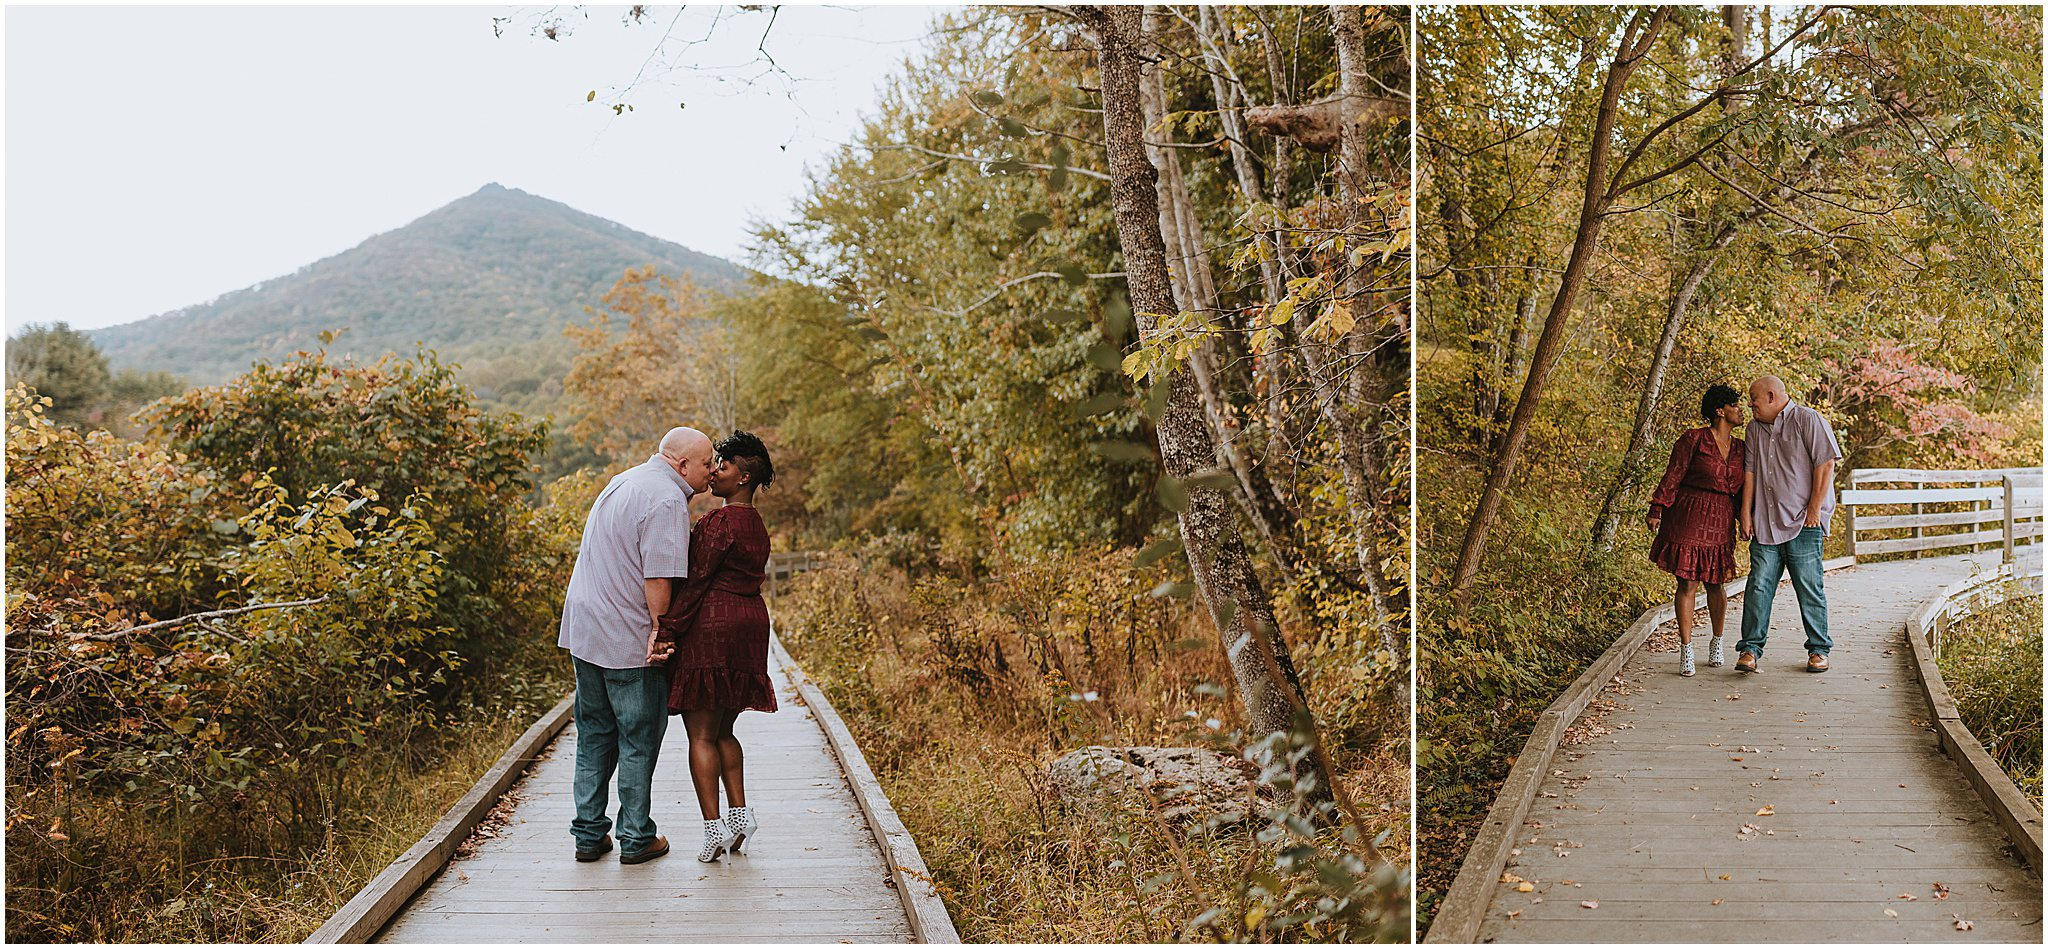 Maria & Brian Engagement session Peaks of Otter Lodge Bedford VA 52